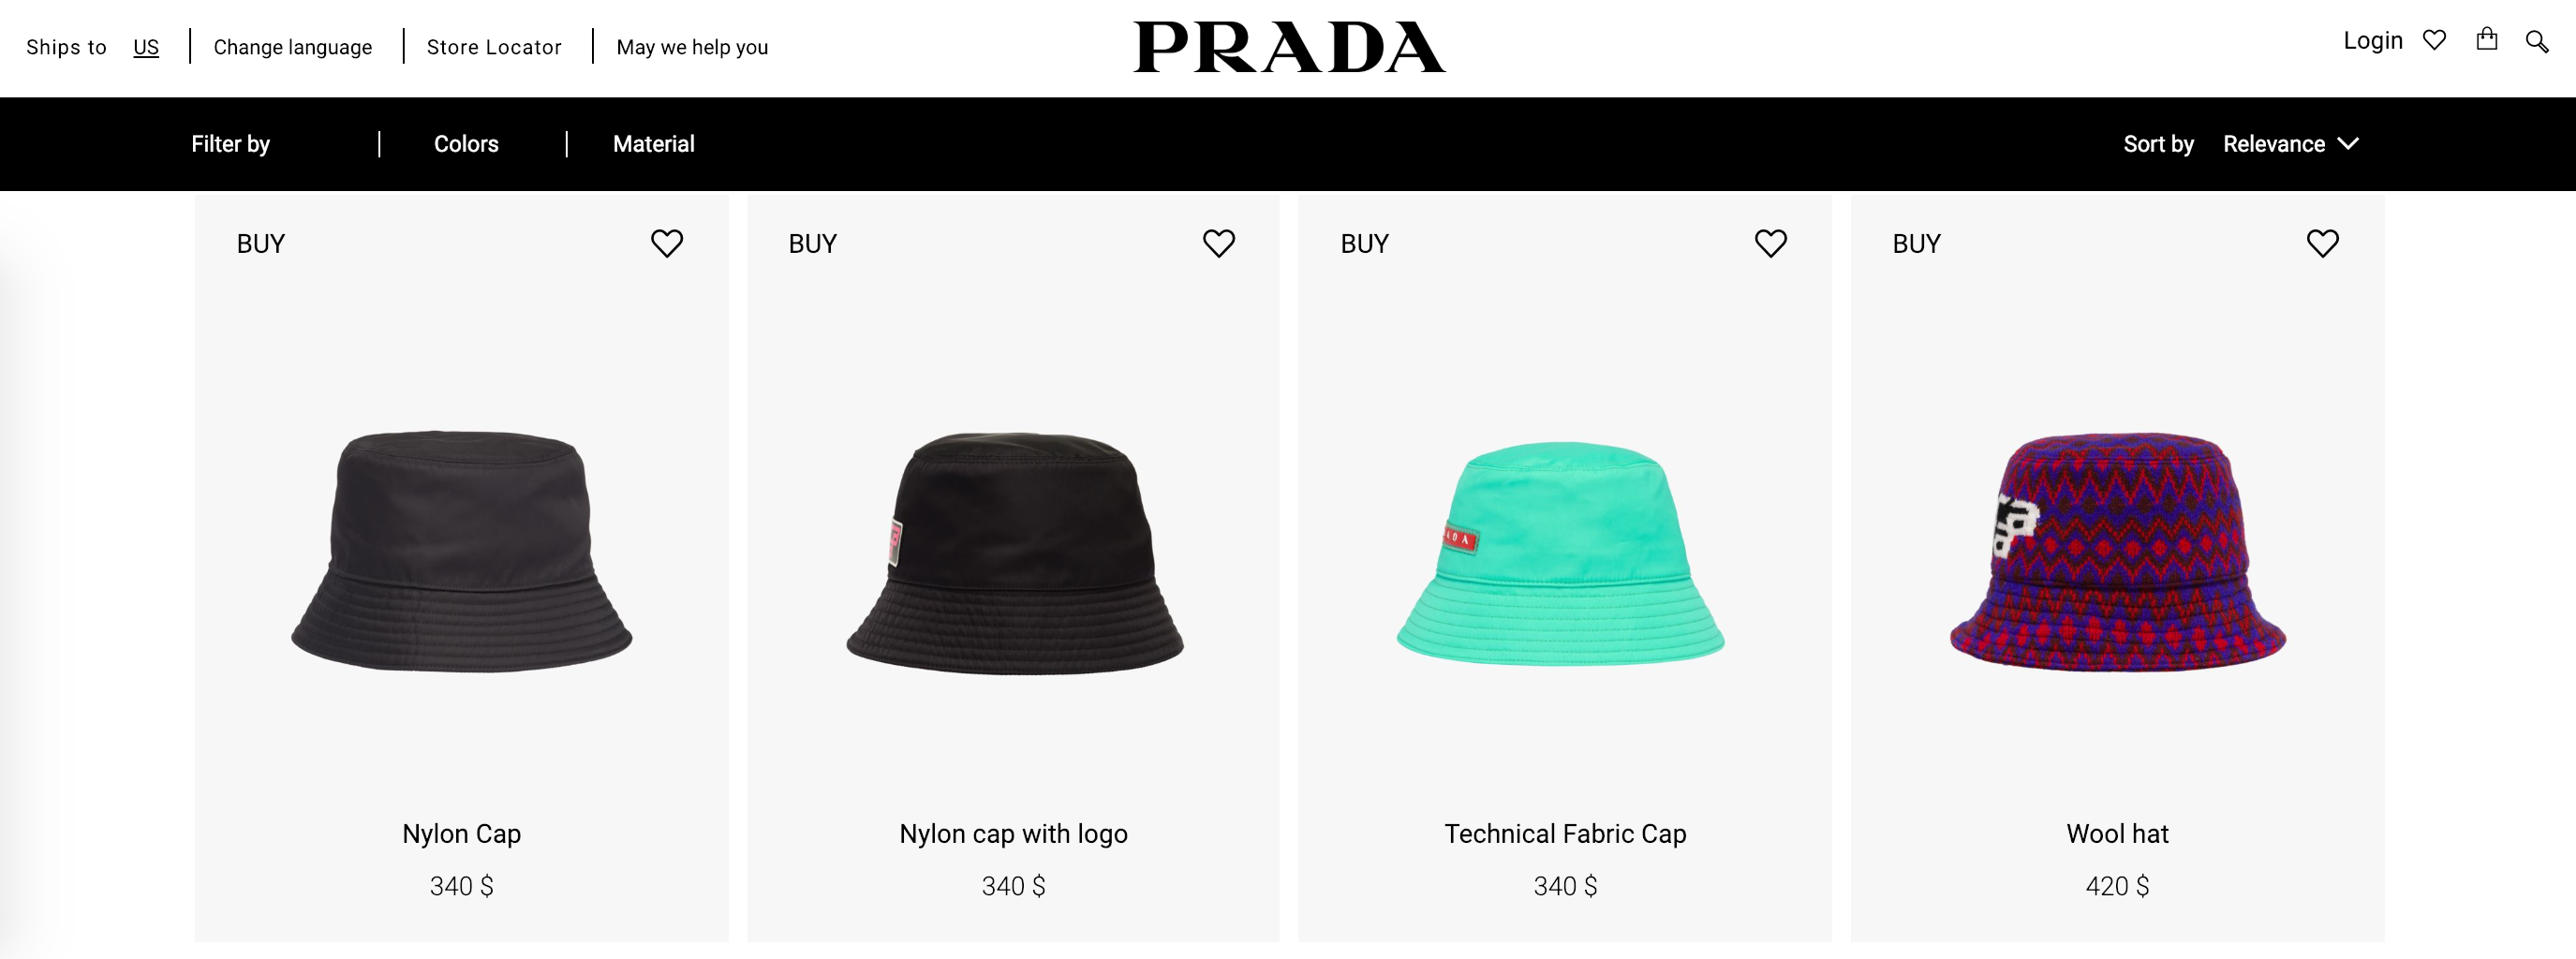 Use-round-pricing-example-Prada